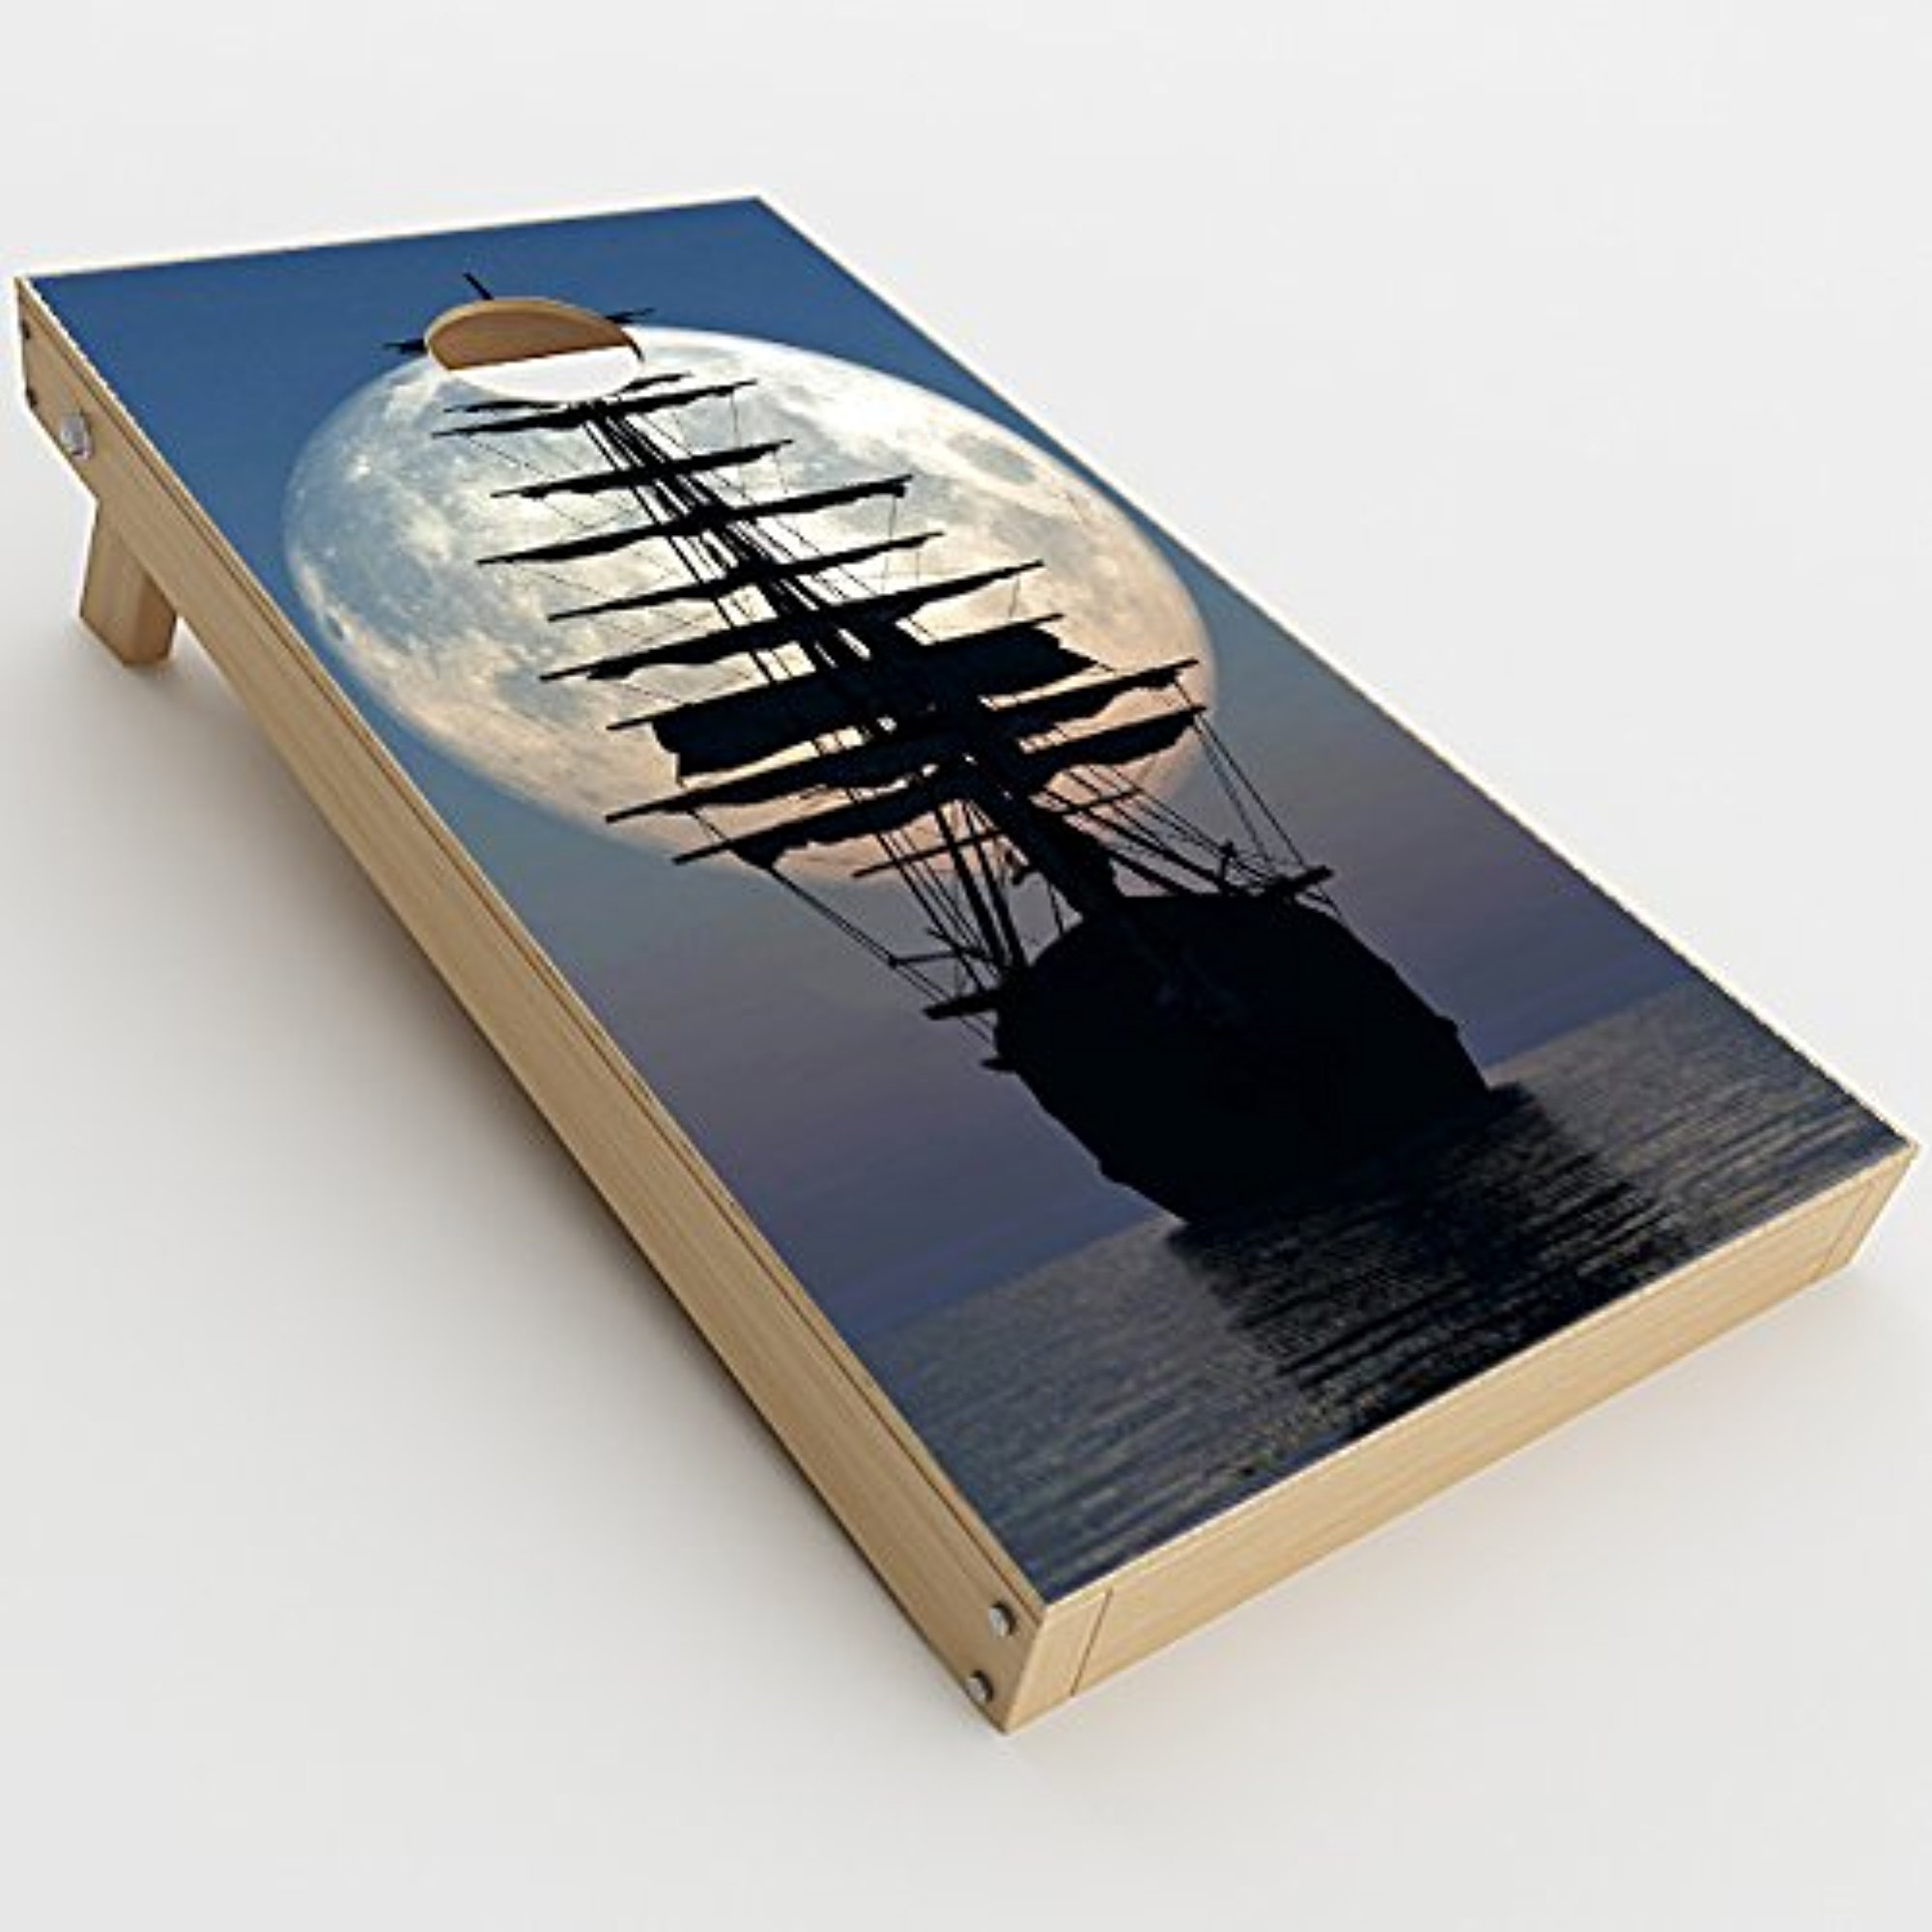 Skin Decals Vinyl Wrap for Cornhole Game Board Bag Toss (2xpcs.)   tall Sailboat, ship in full Moon by